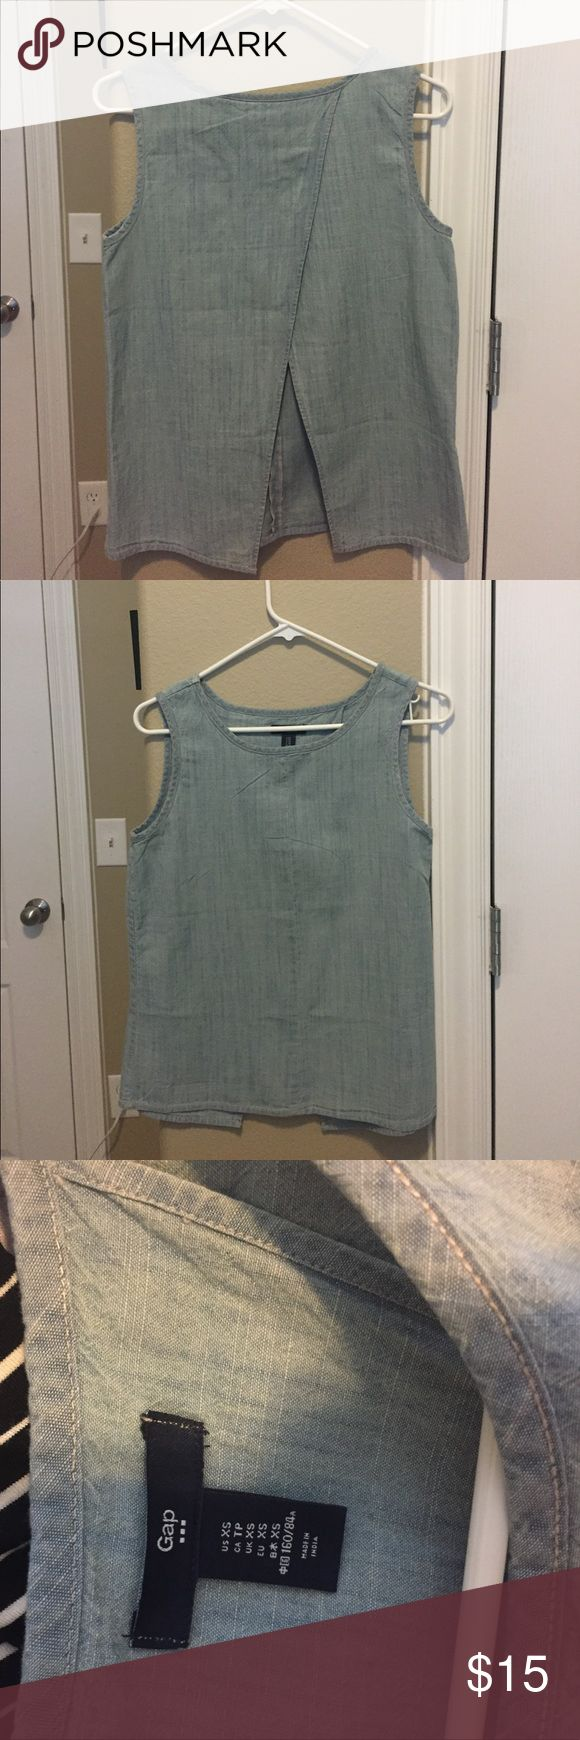 """Open back denim top Adorable GAP light denim """"peek"""" open back tank top. So cute and only worn once. Pair with a great bandeau top for summer! GAP Tops Tank Tops"""